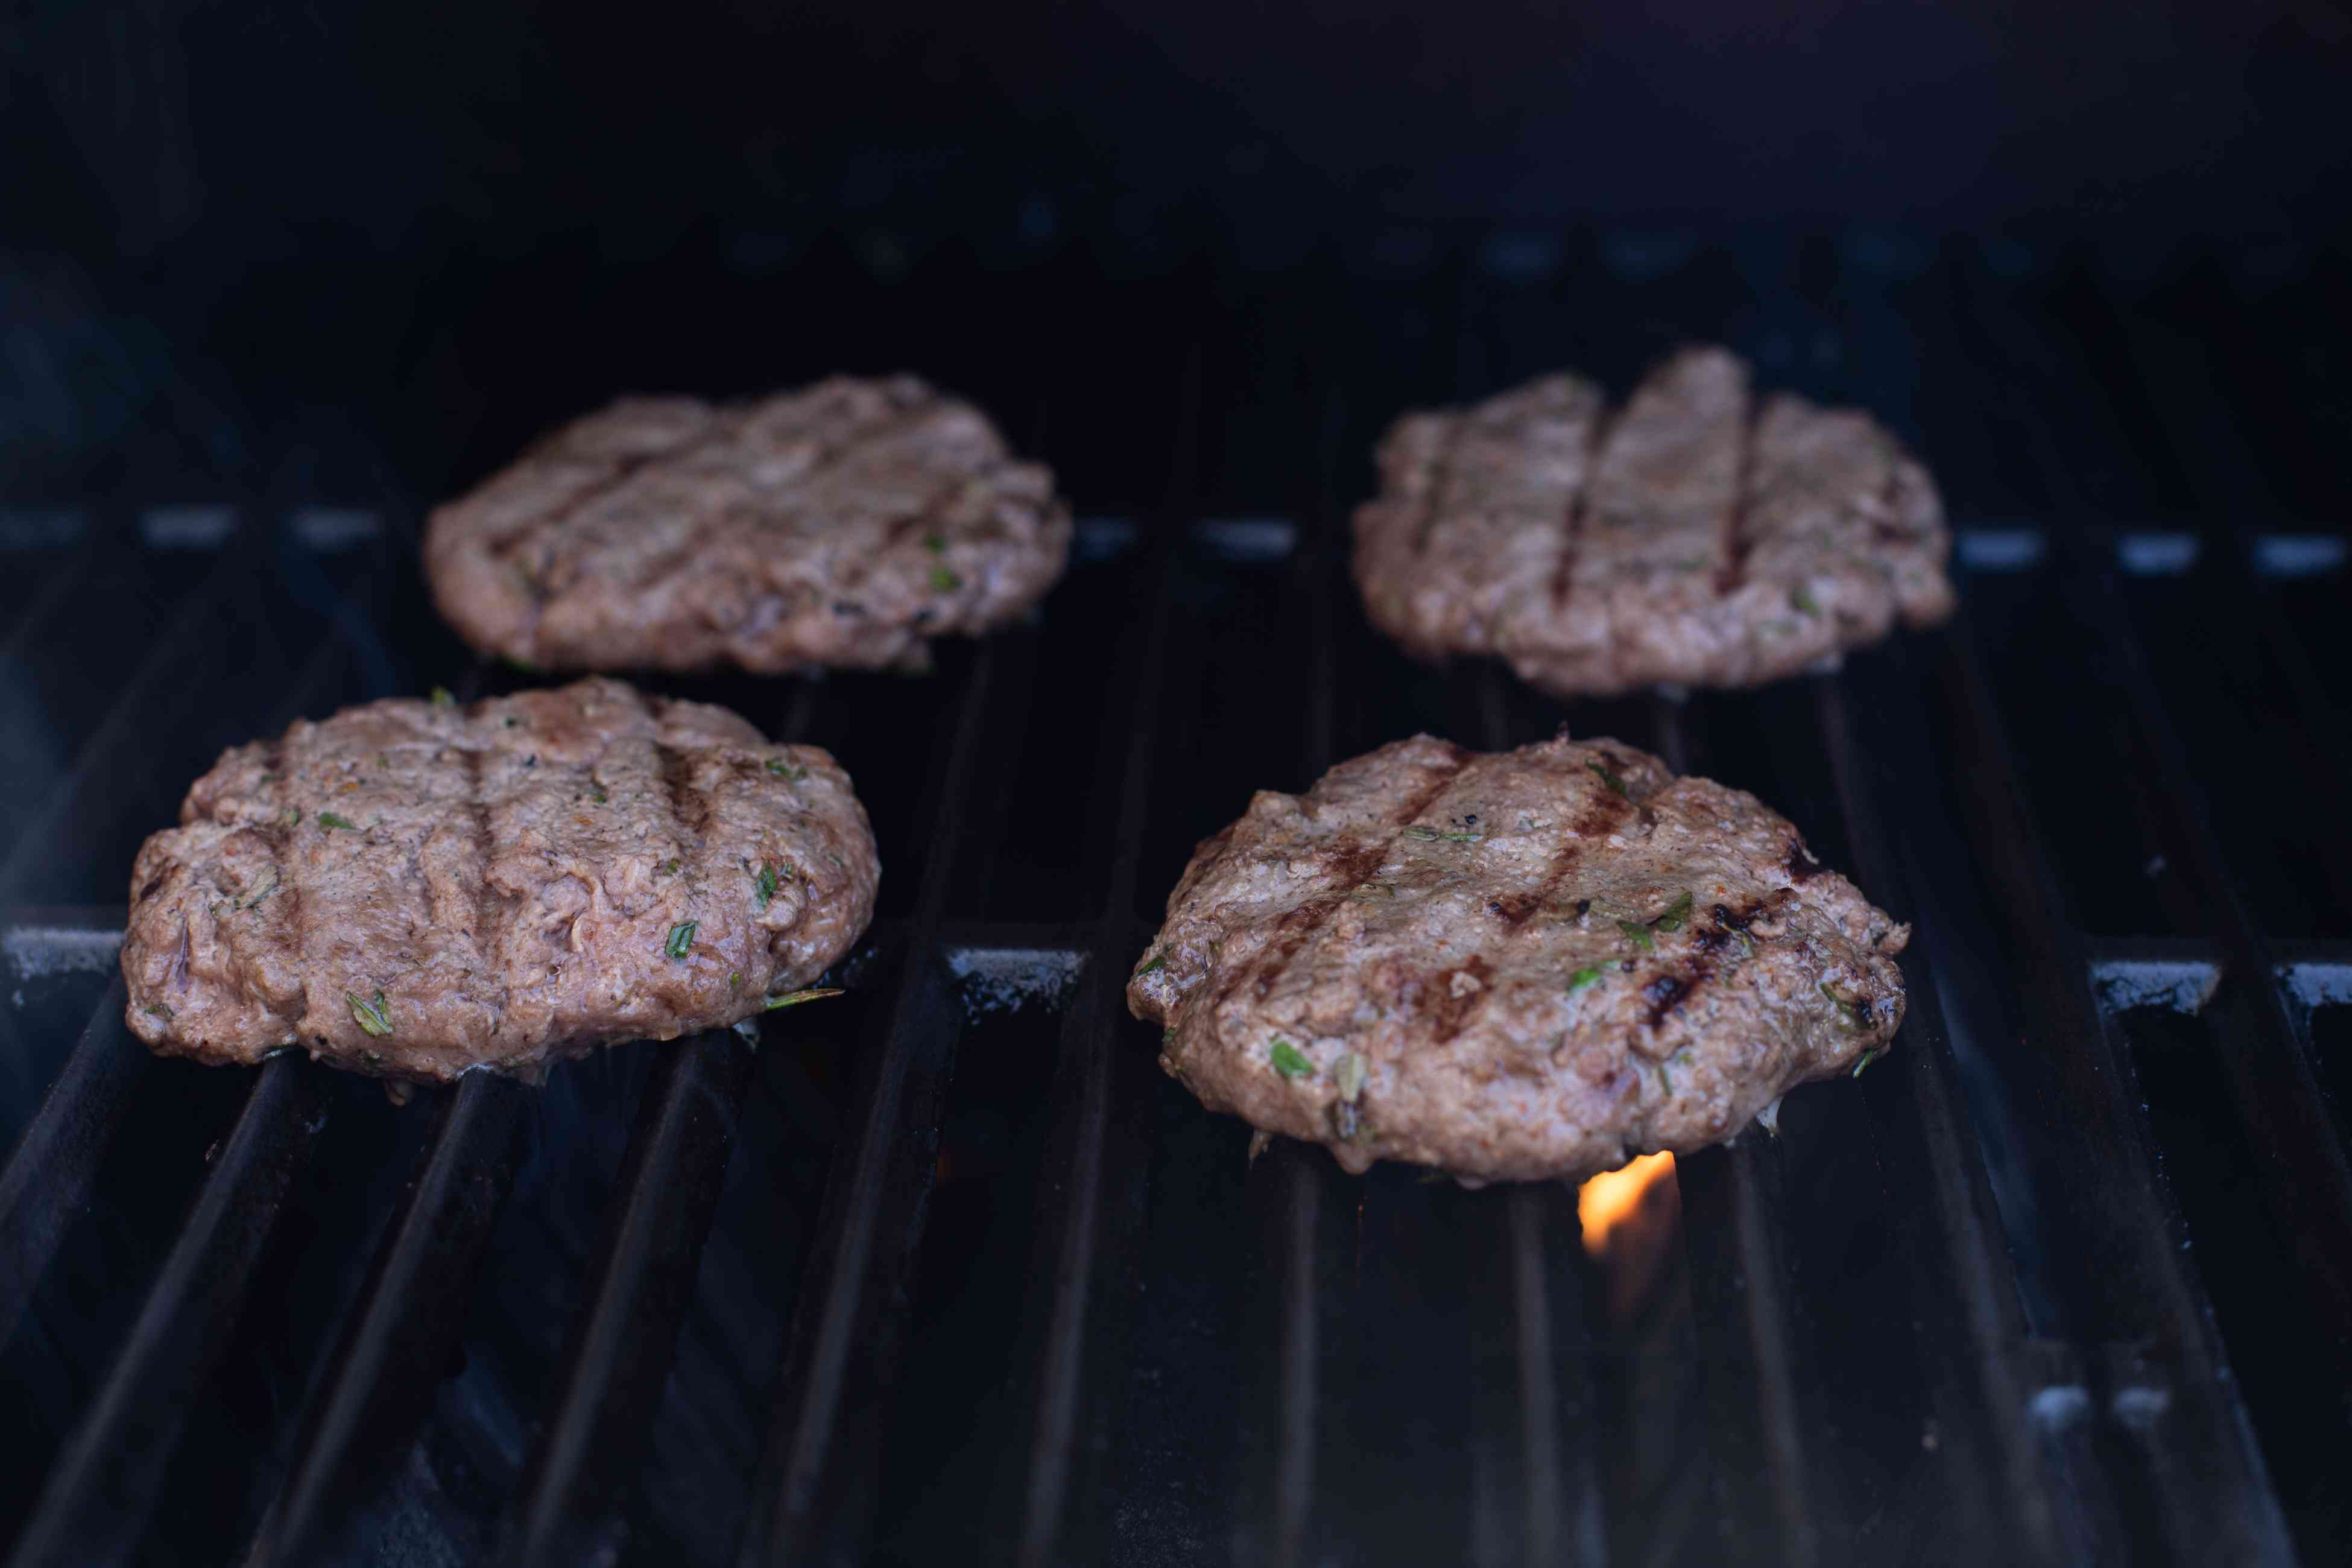 Grilling burgers to make a famous burger.